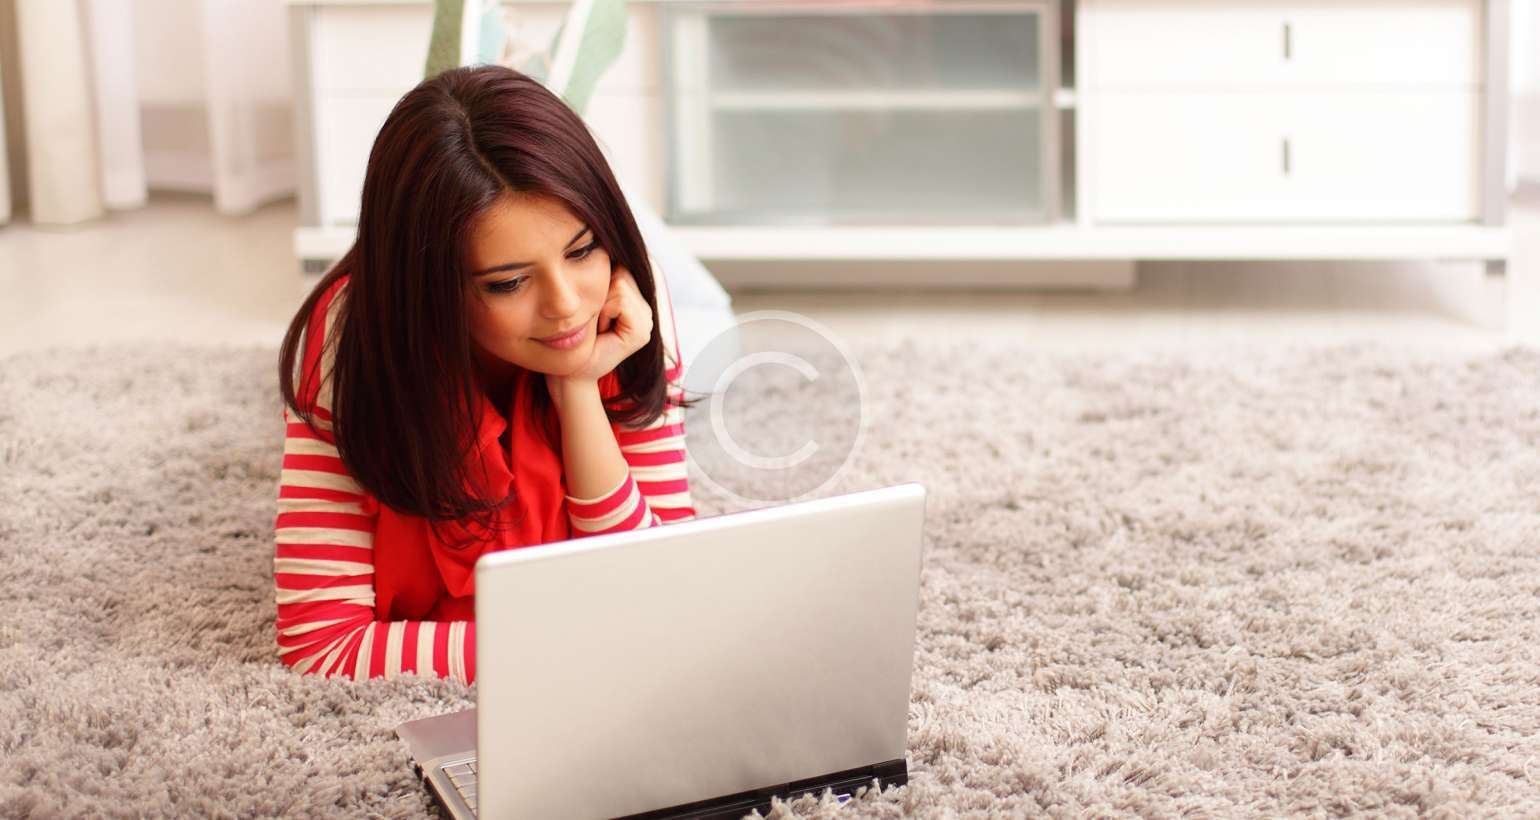 Choosing a Computer or Electronic Device For Your Child